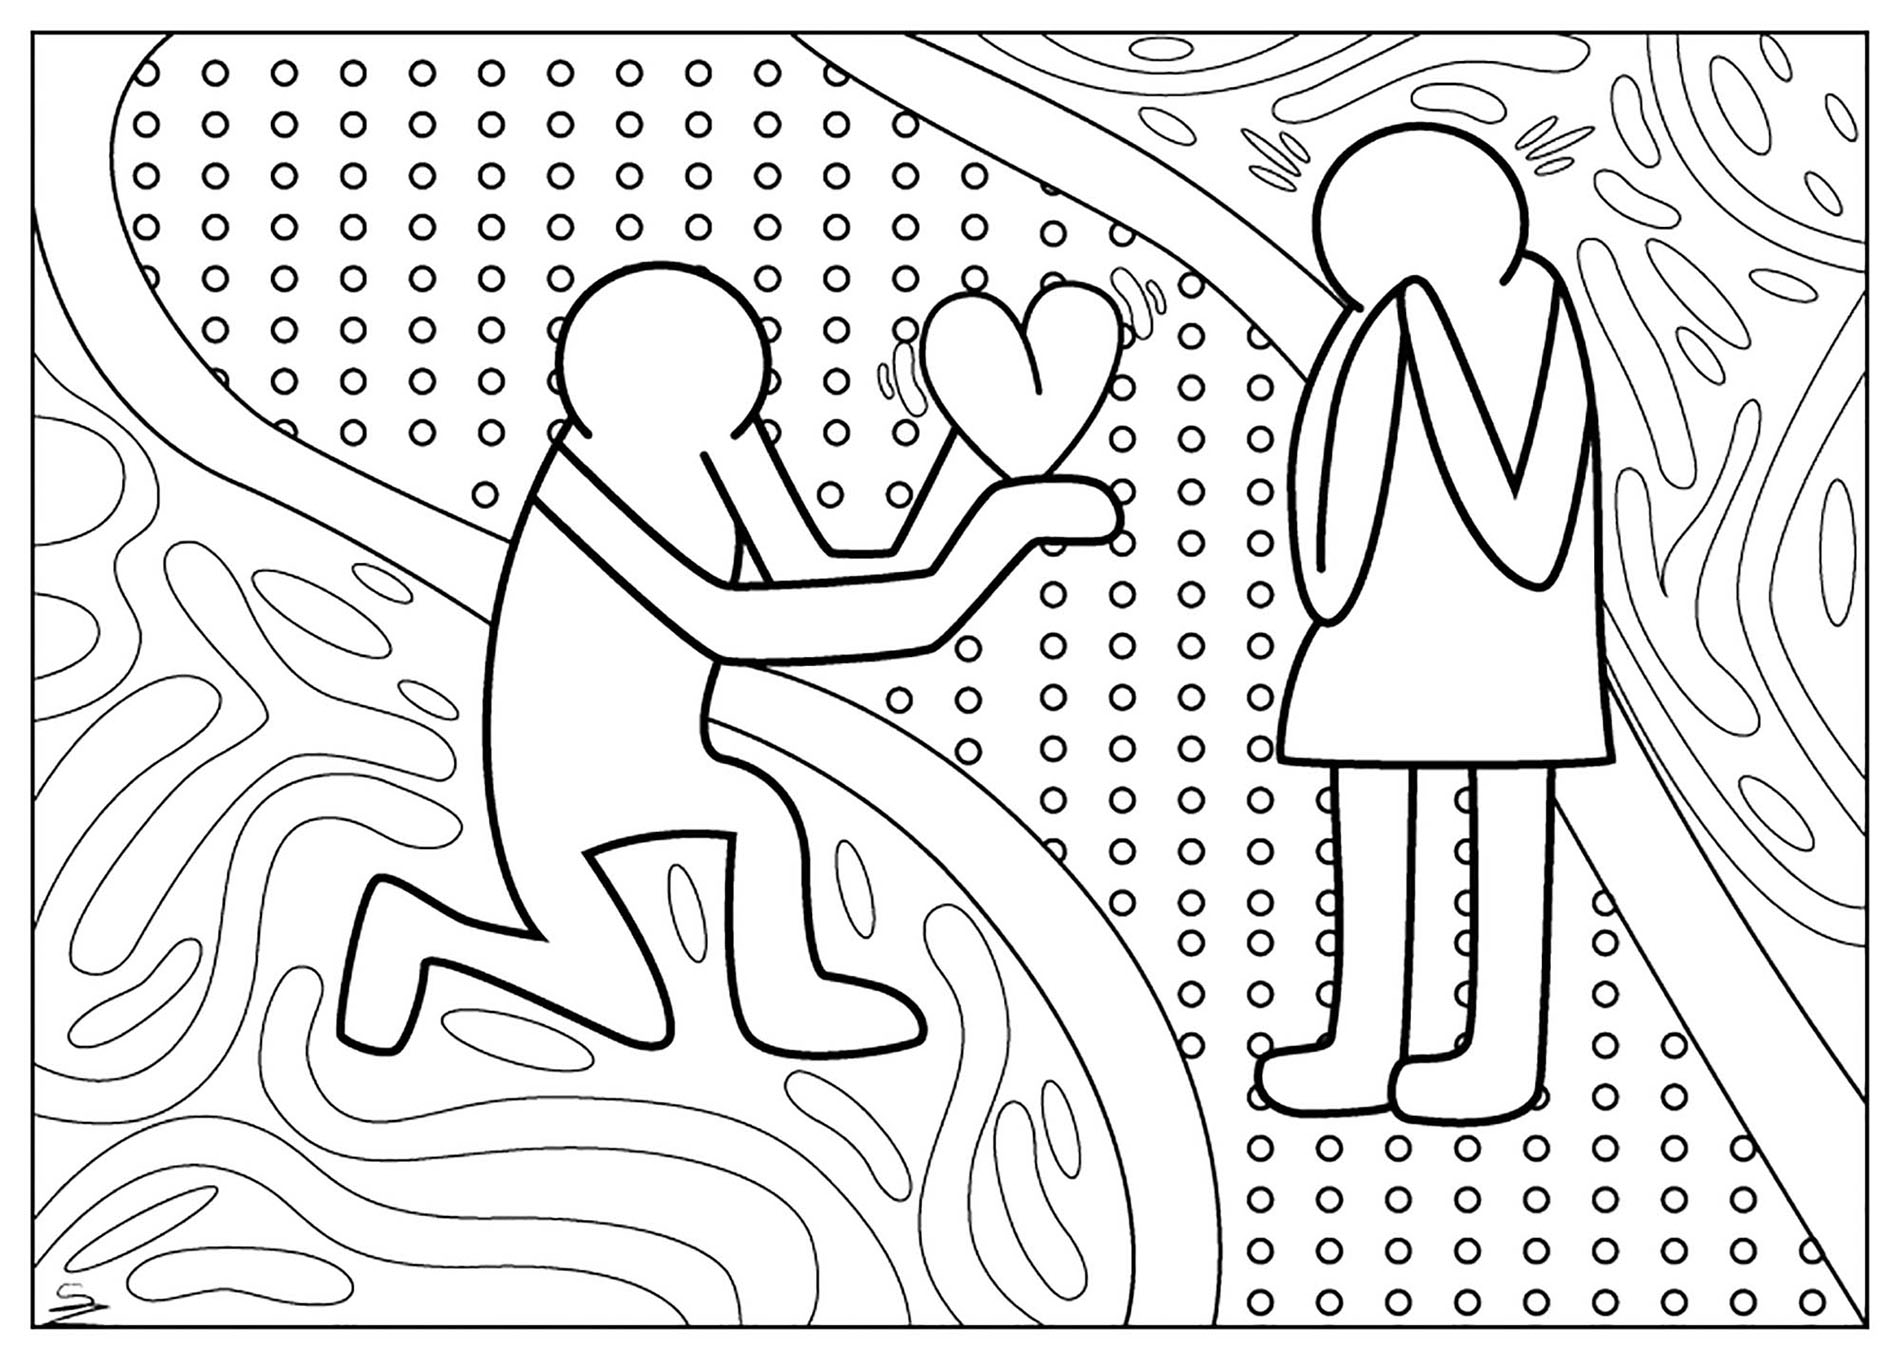 Free Keith Haring coloring page to print and color